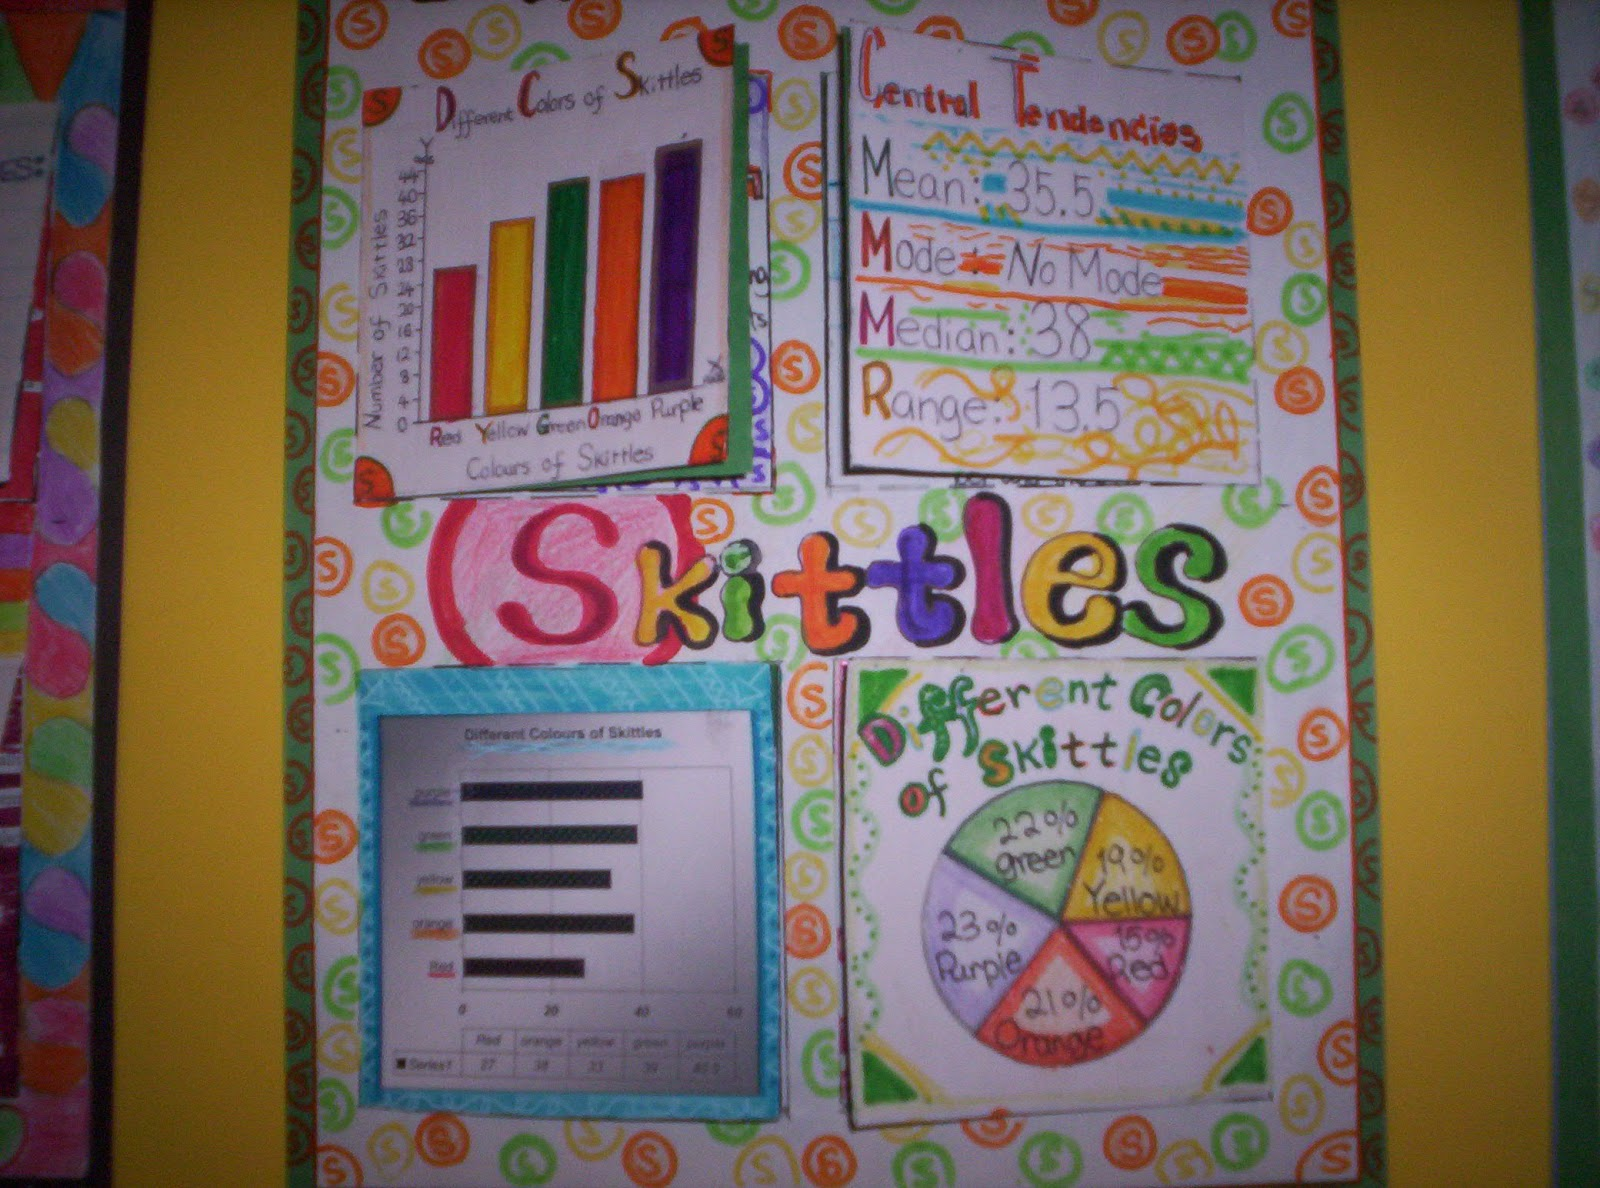 ... but Over: Smarties / Skittles - Data Analysis and Graphing Project